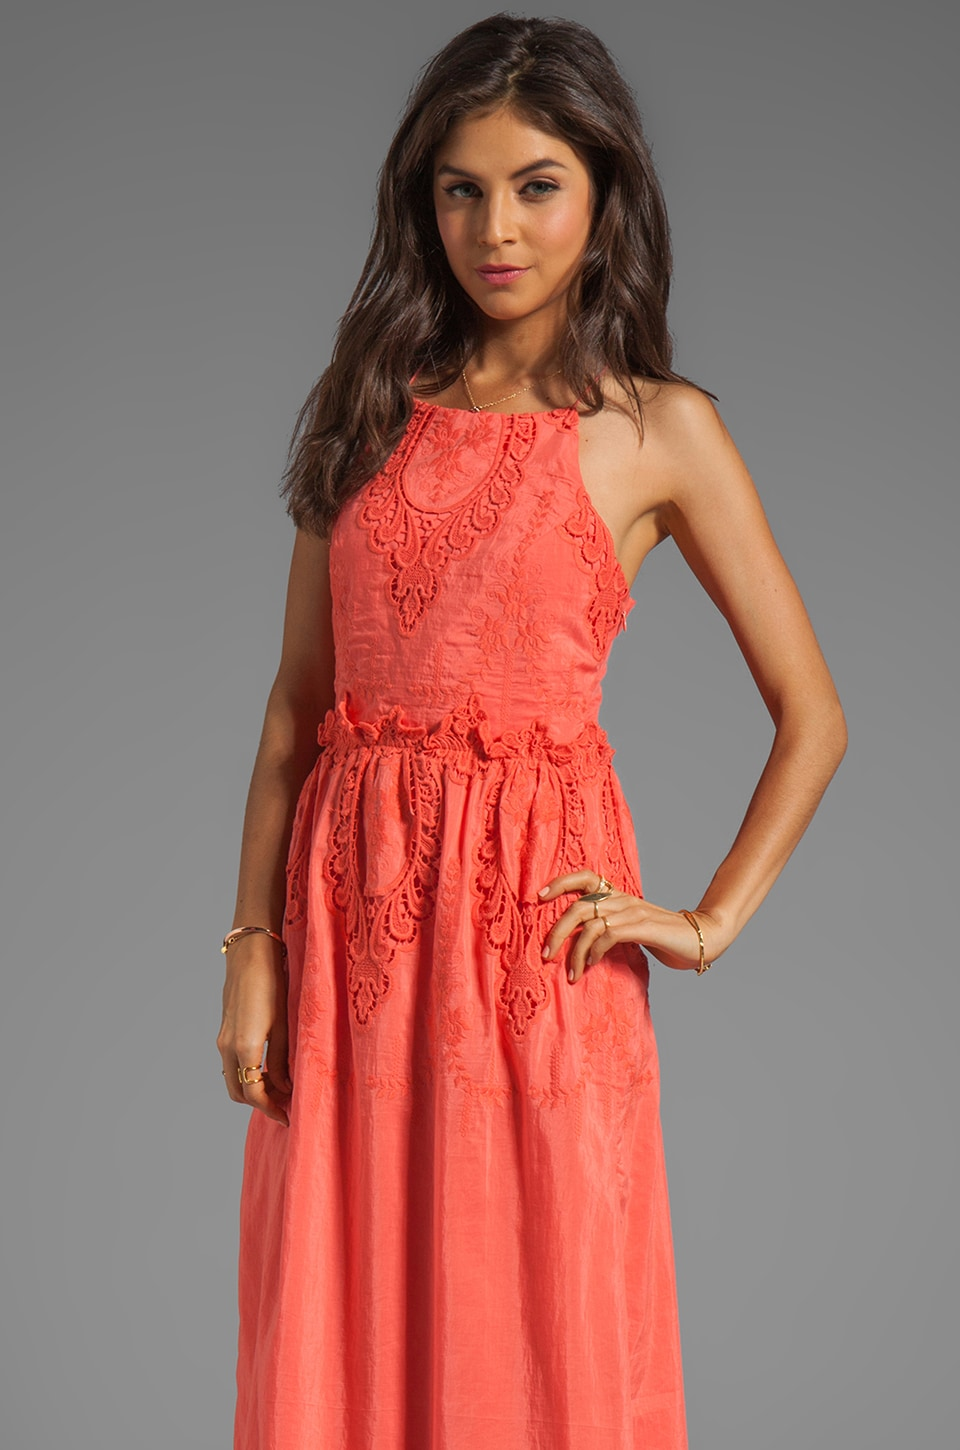 Dolce Vita Rayan Petticoat Embroidery Maxi Dress in Melon